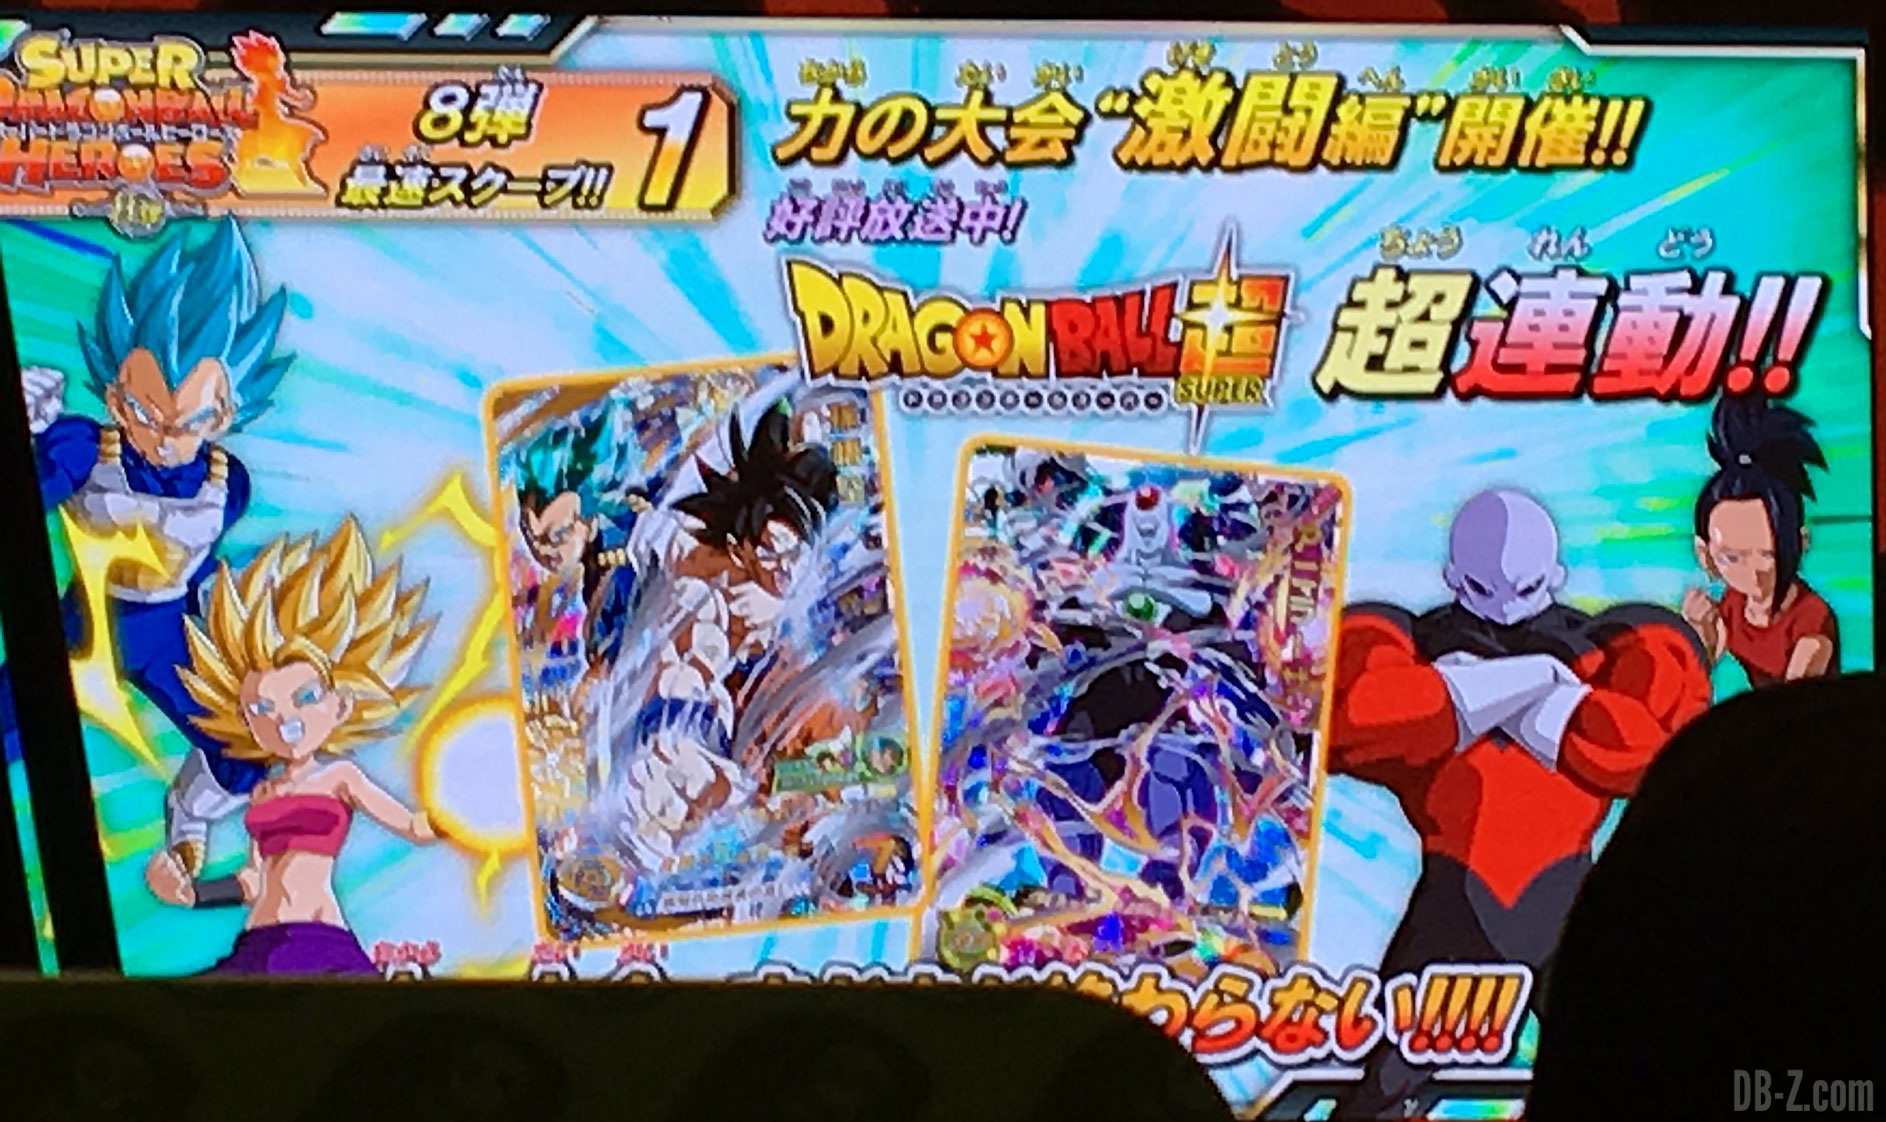 Dragon ball heroes opening 1 - 1 3